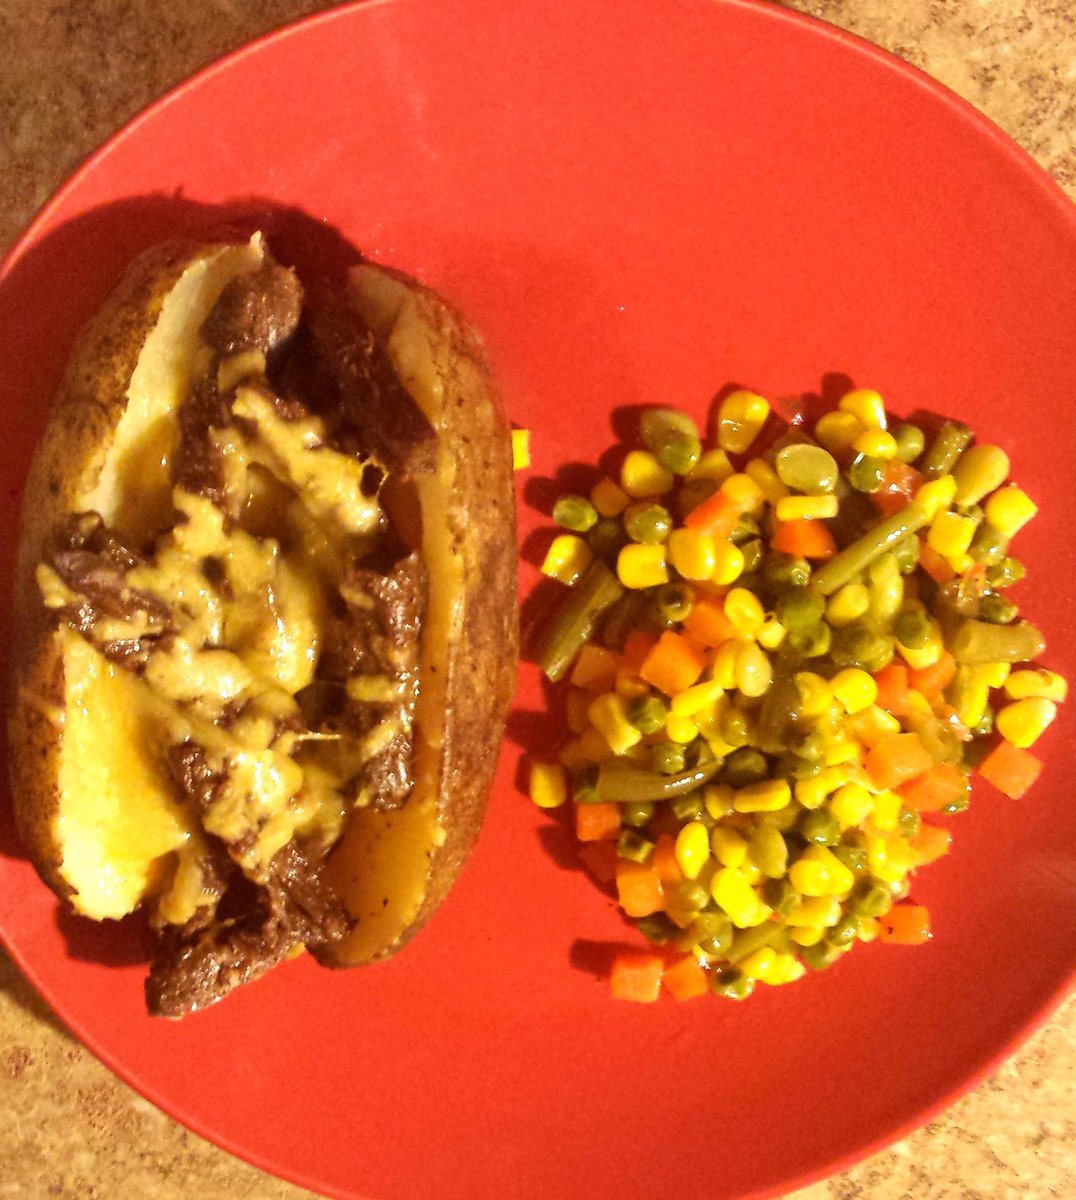 #Vegetarian #steak strips from @MorningStrFarms, #potatoes and mixed #vegetables. #Dinner ideas @Contrabandenter.<br>http://pic.twitter.com/rkhyCmCQQy